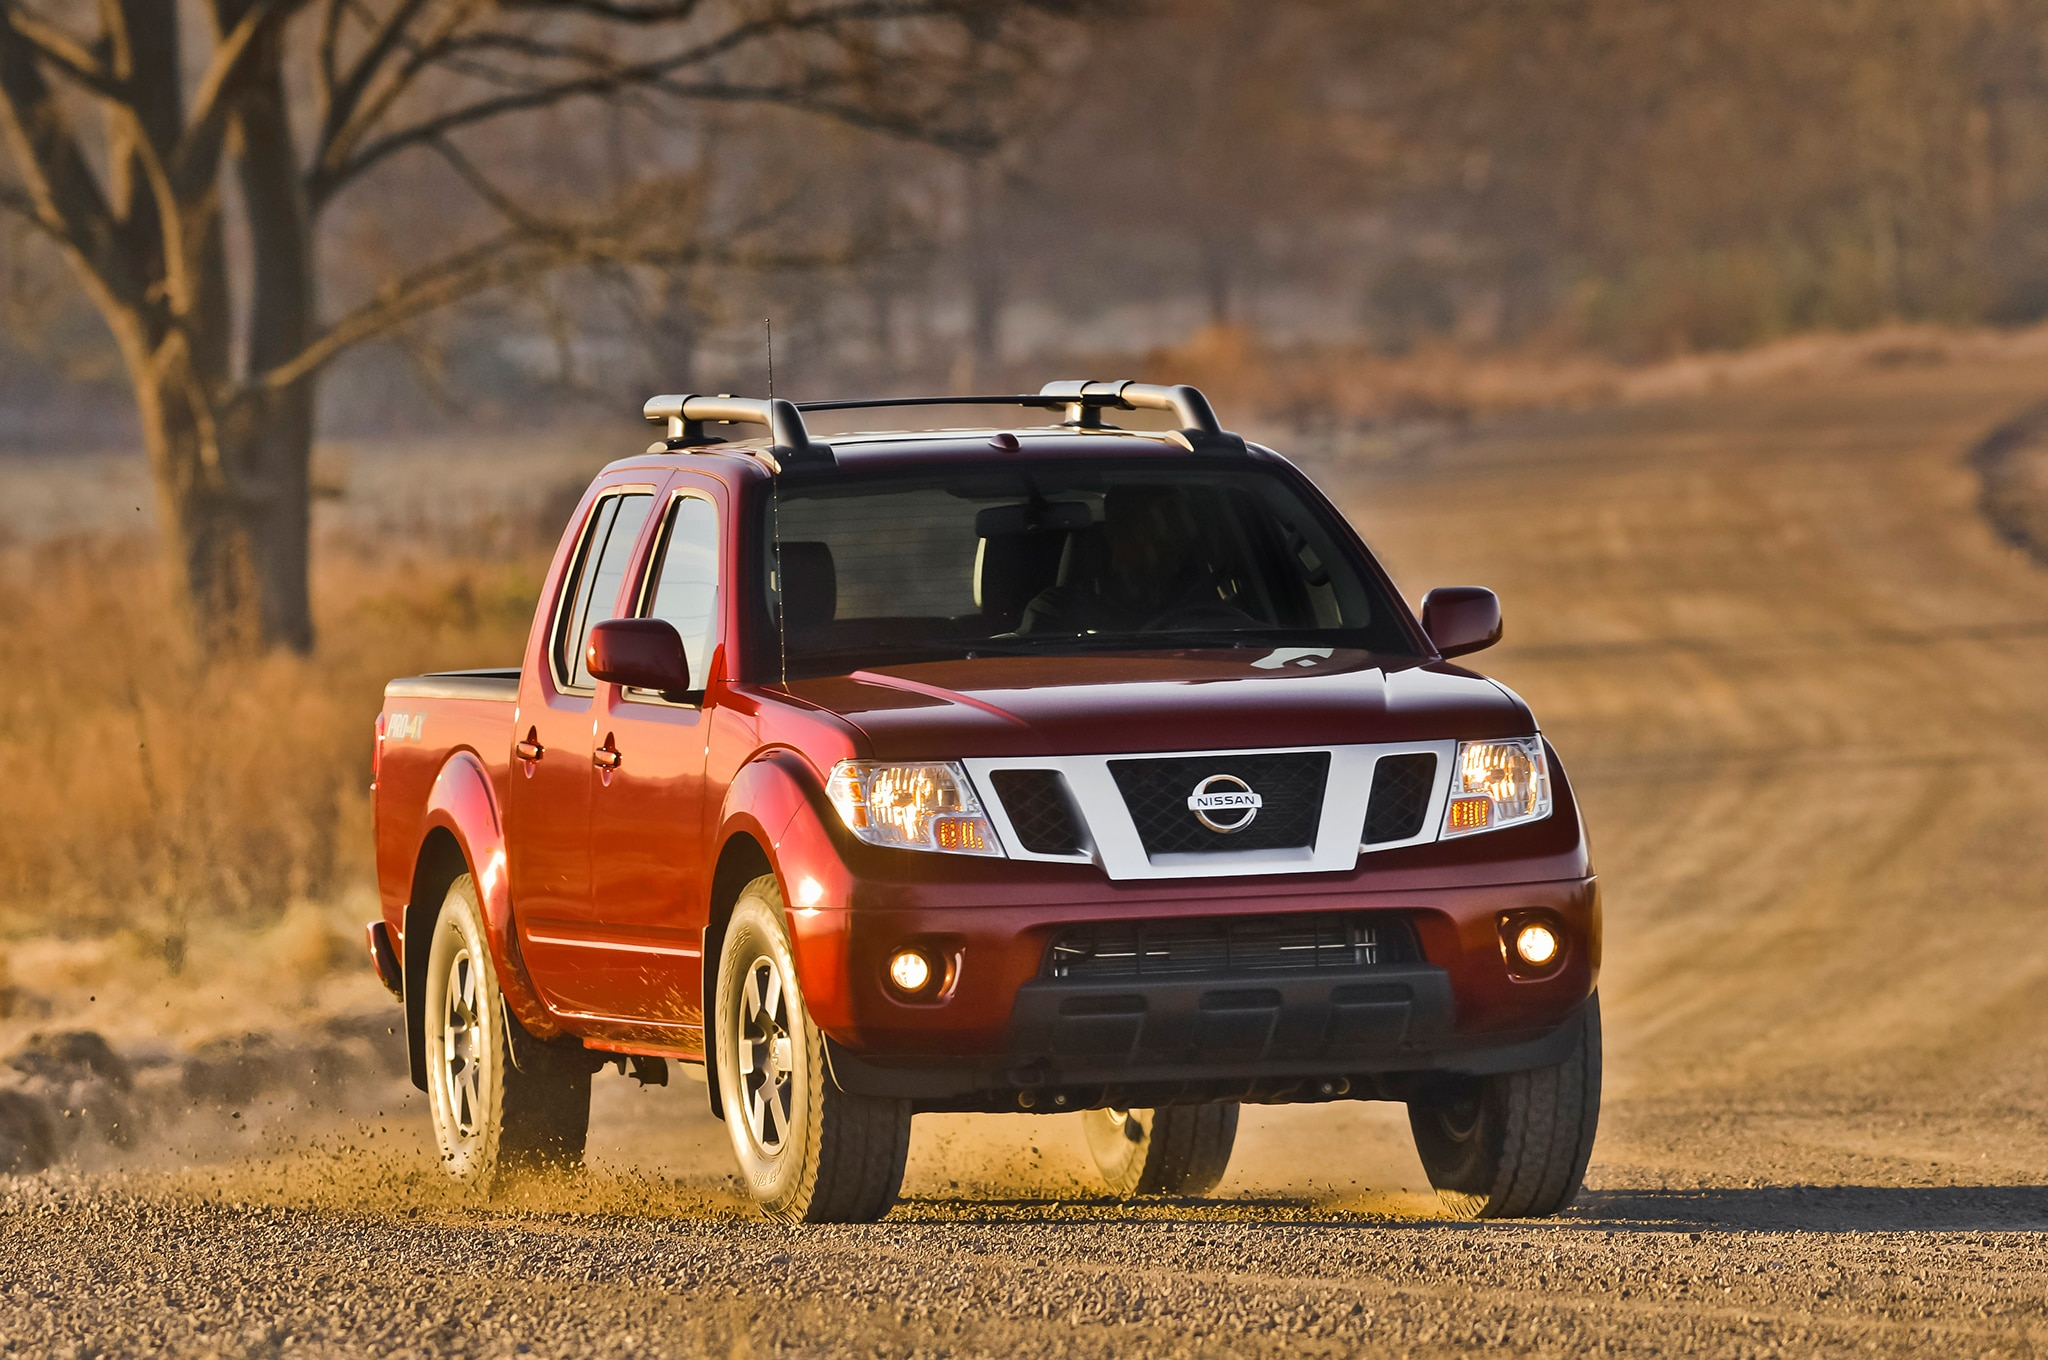 2014 Nissan Frontier Crew Cab Three Quarters View 0031